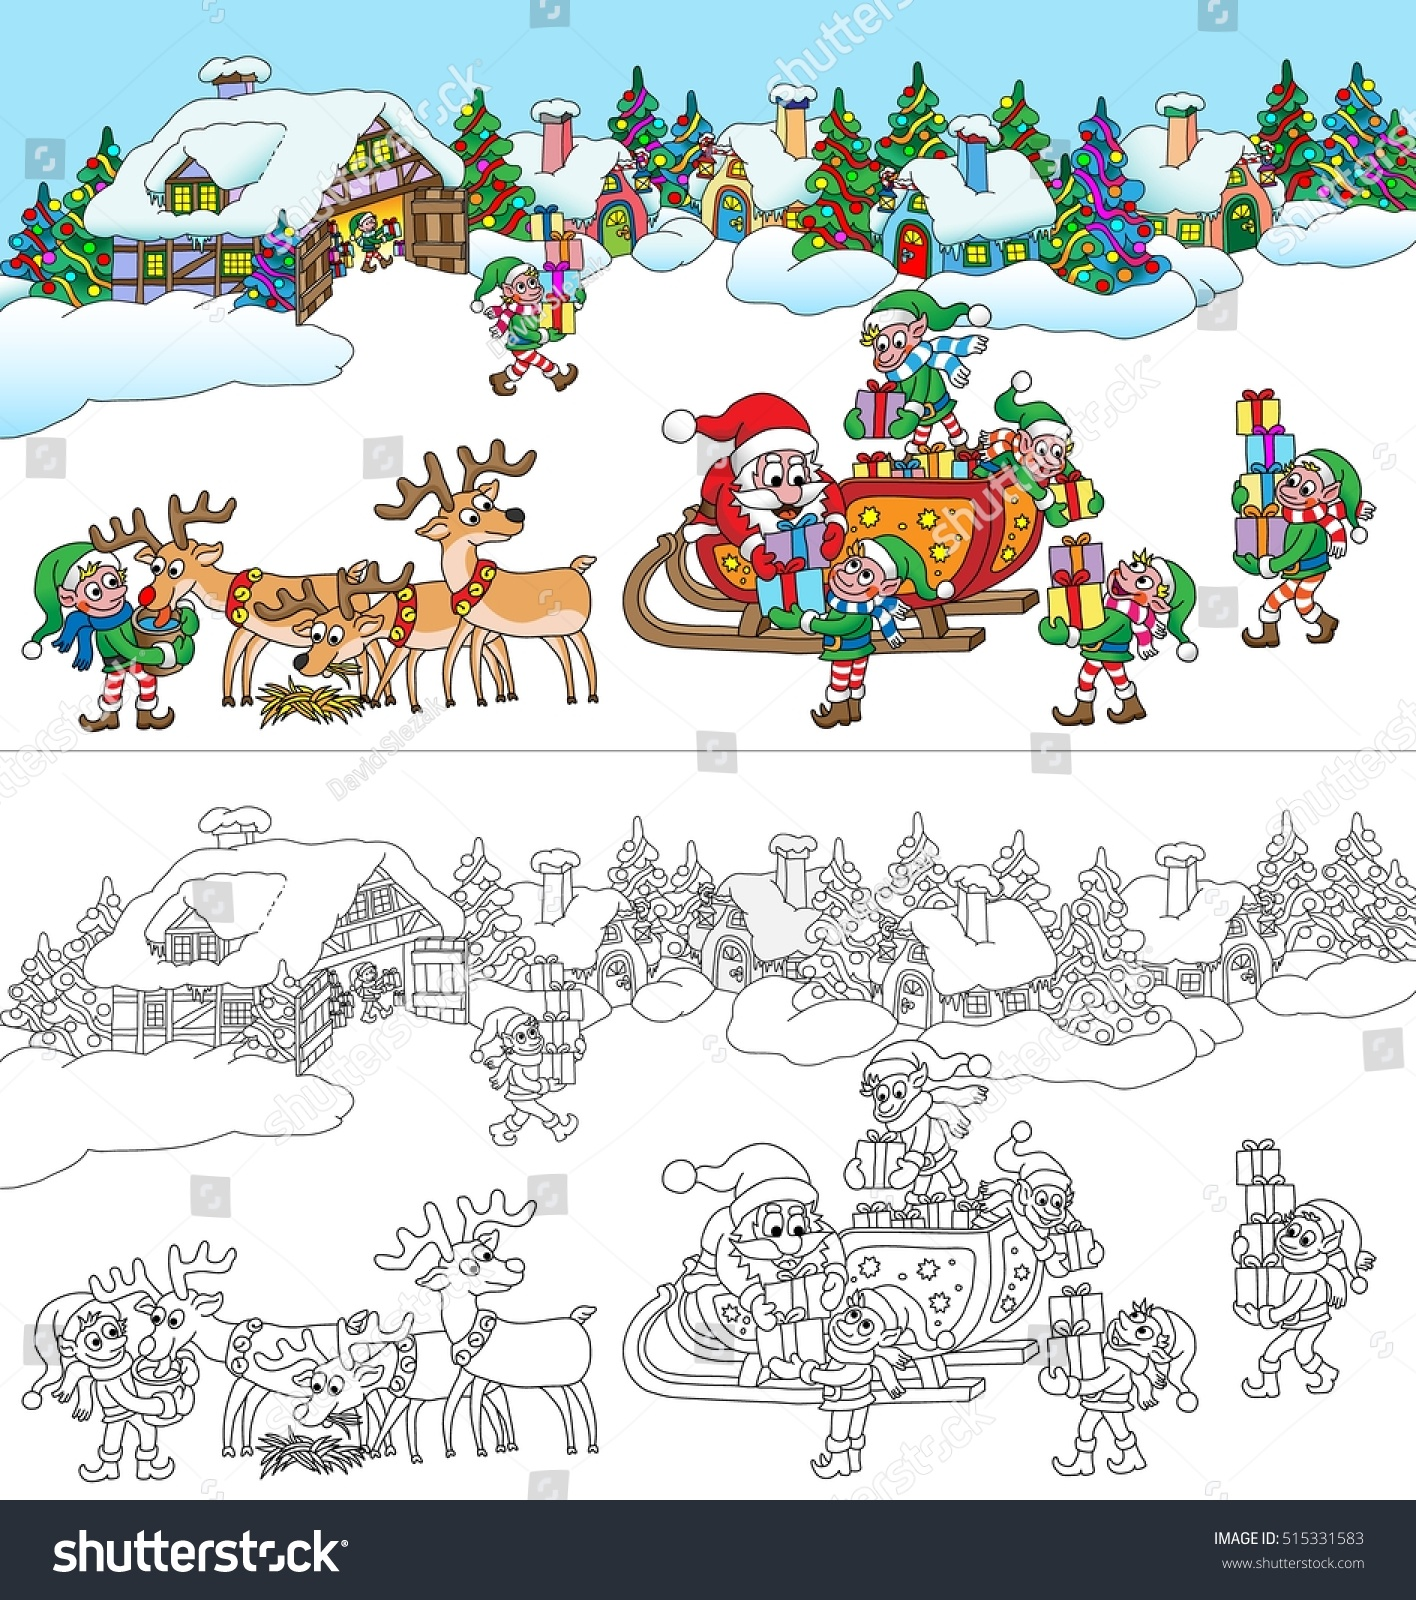 santas village coloring book page vector cartoon illustration